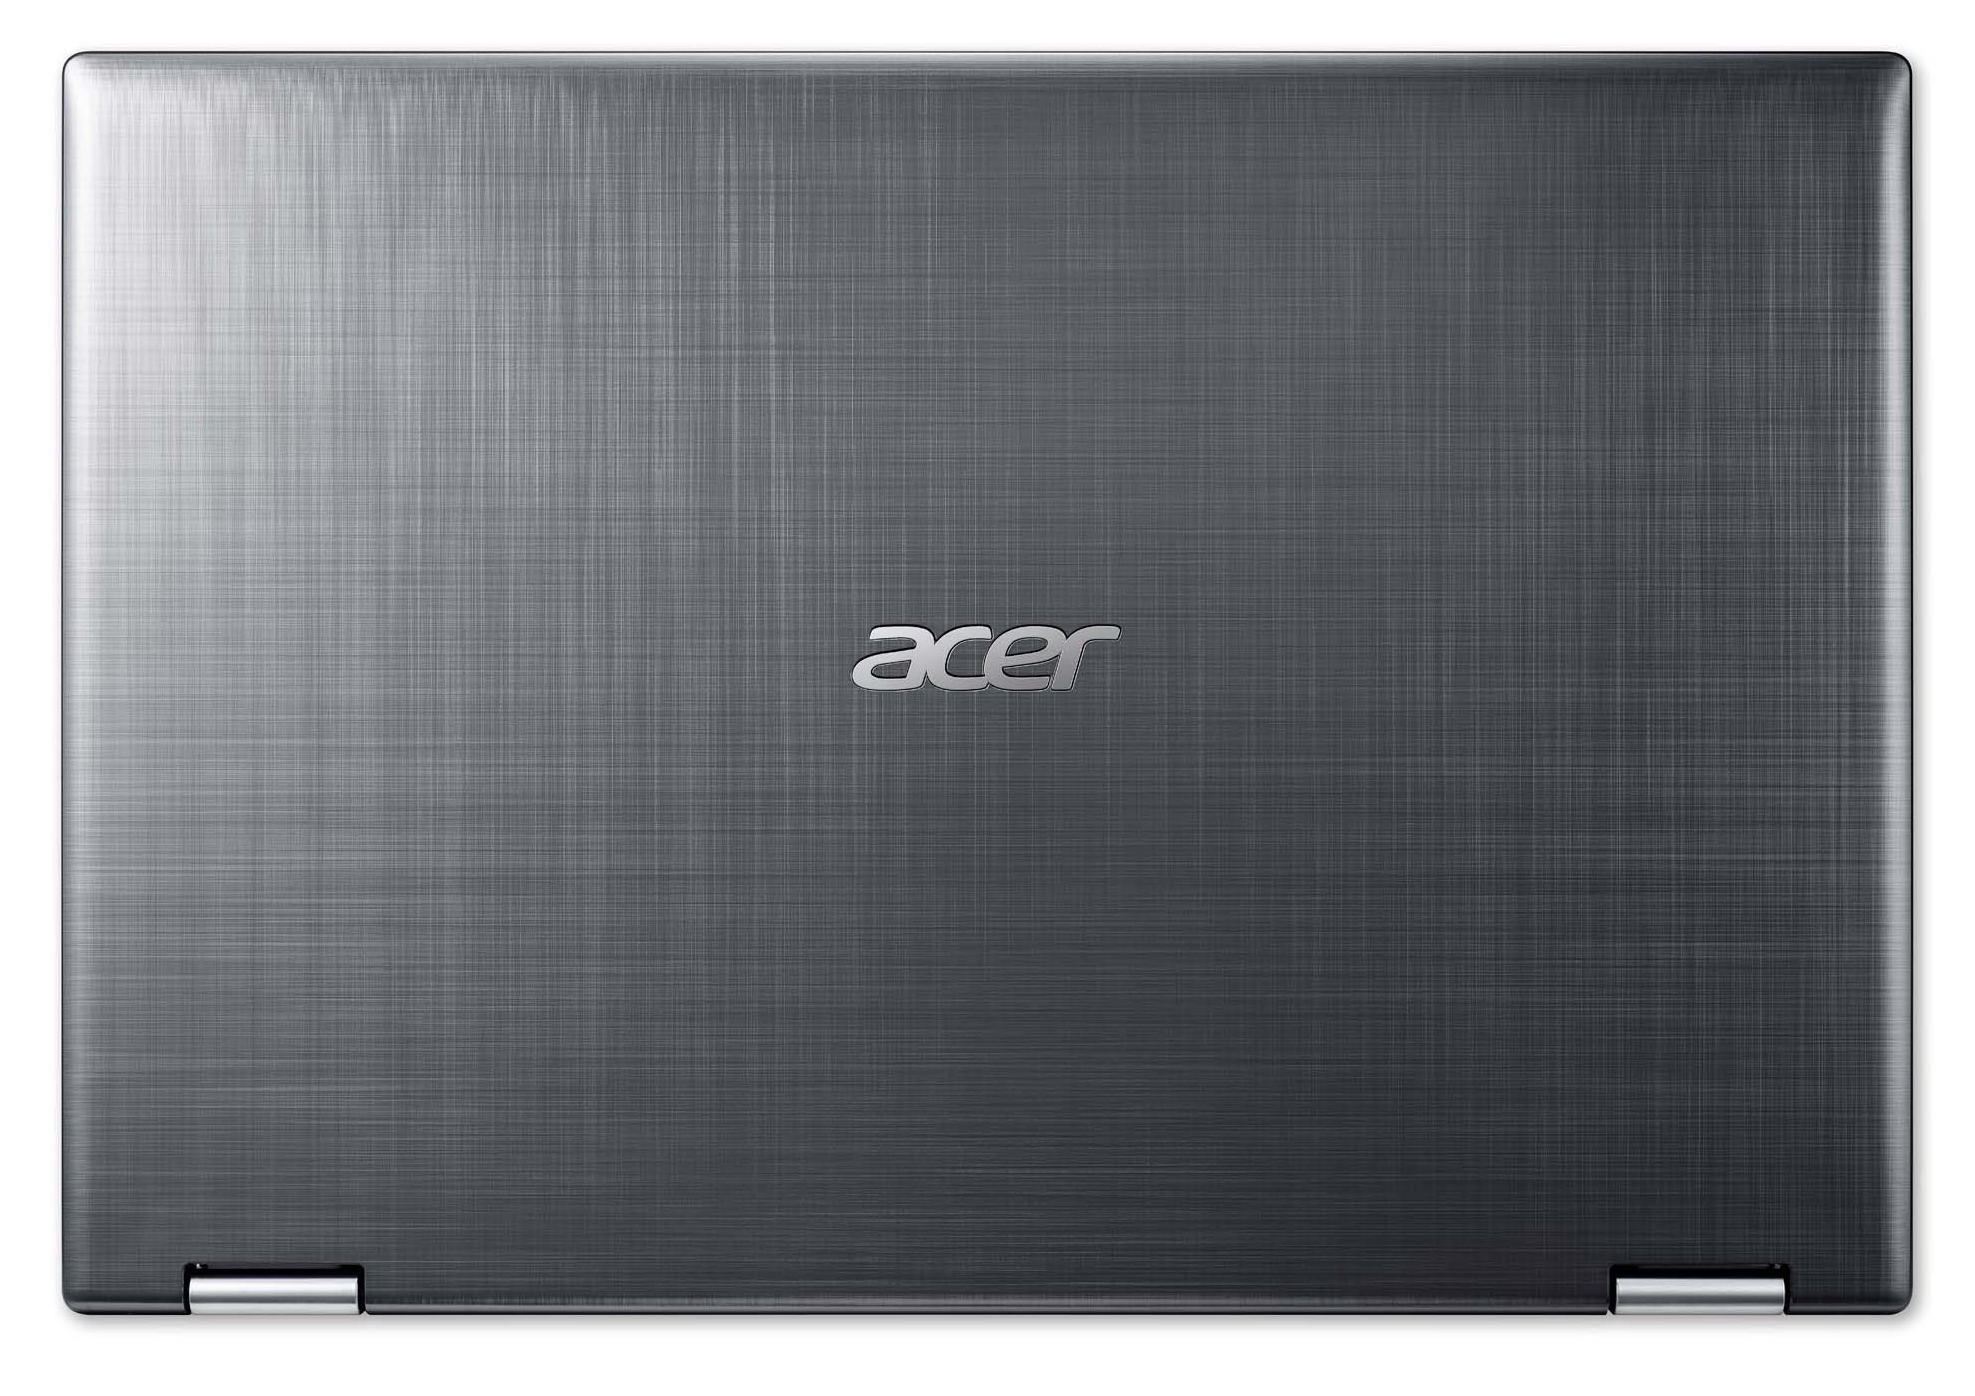 Acer Spin 3 Sp314 51 I5 8250u Ssd Fhd Convertible Review